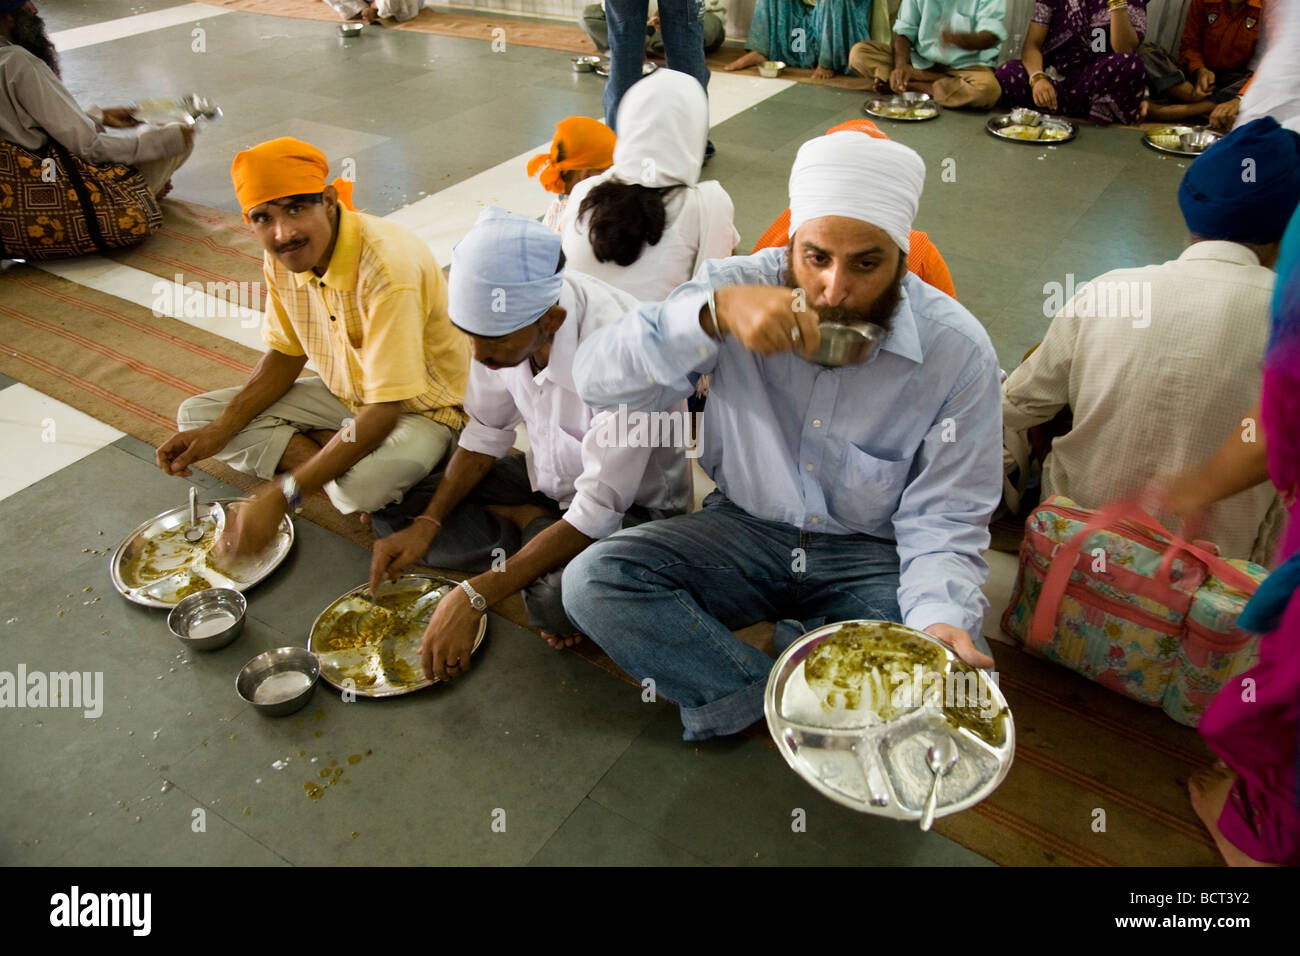 Sikh men eating a free meal served in the Community kitchen at the The Golden Temple (Sri Harmandir Sahib) Amritsar. Stock Photo